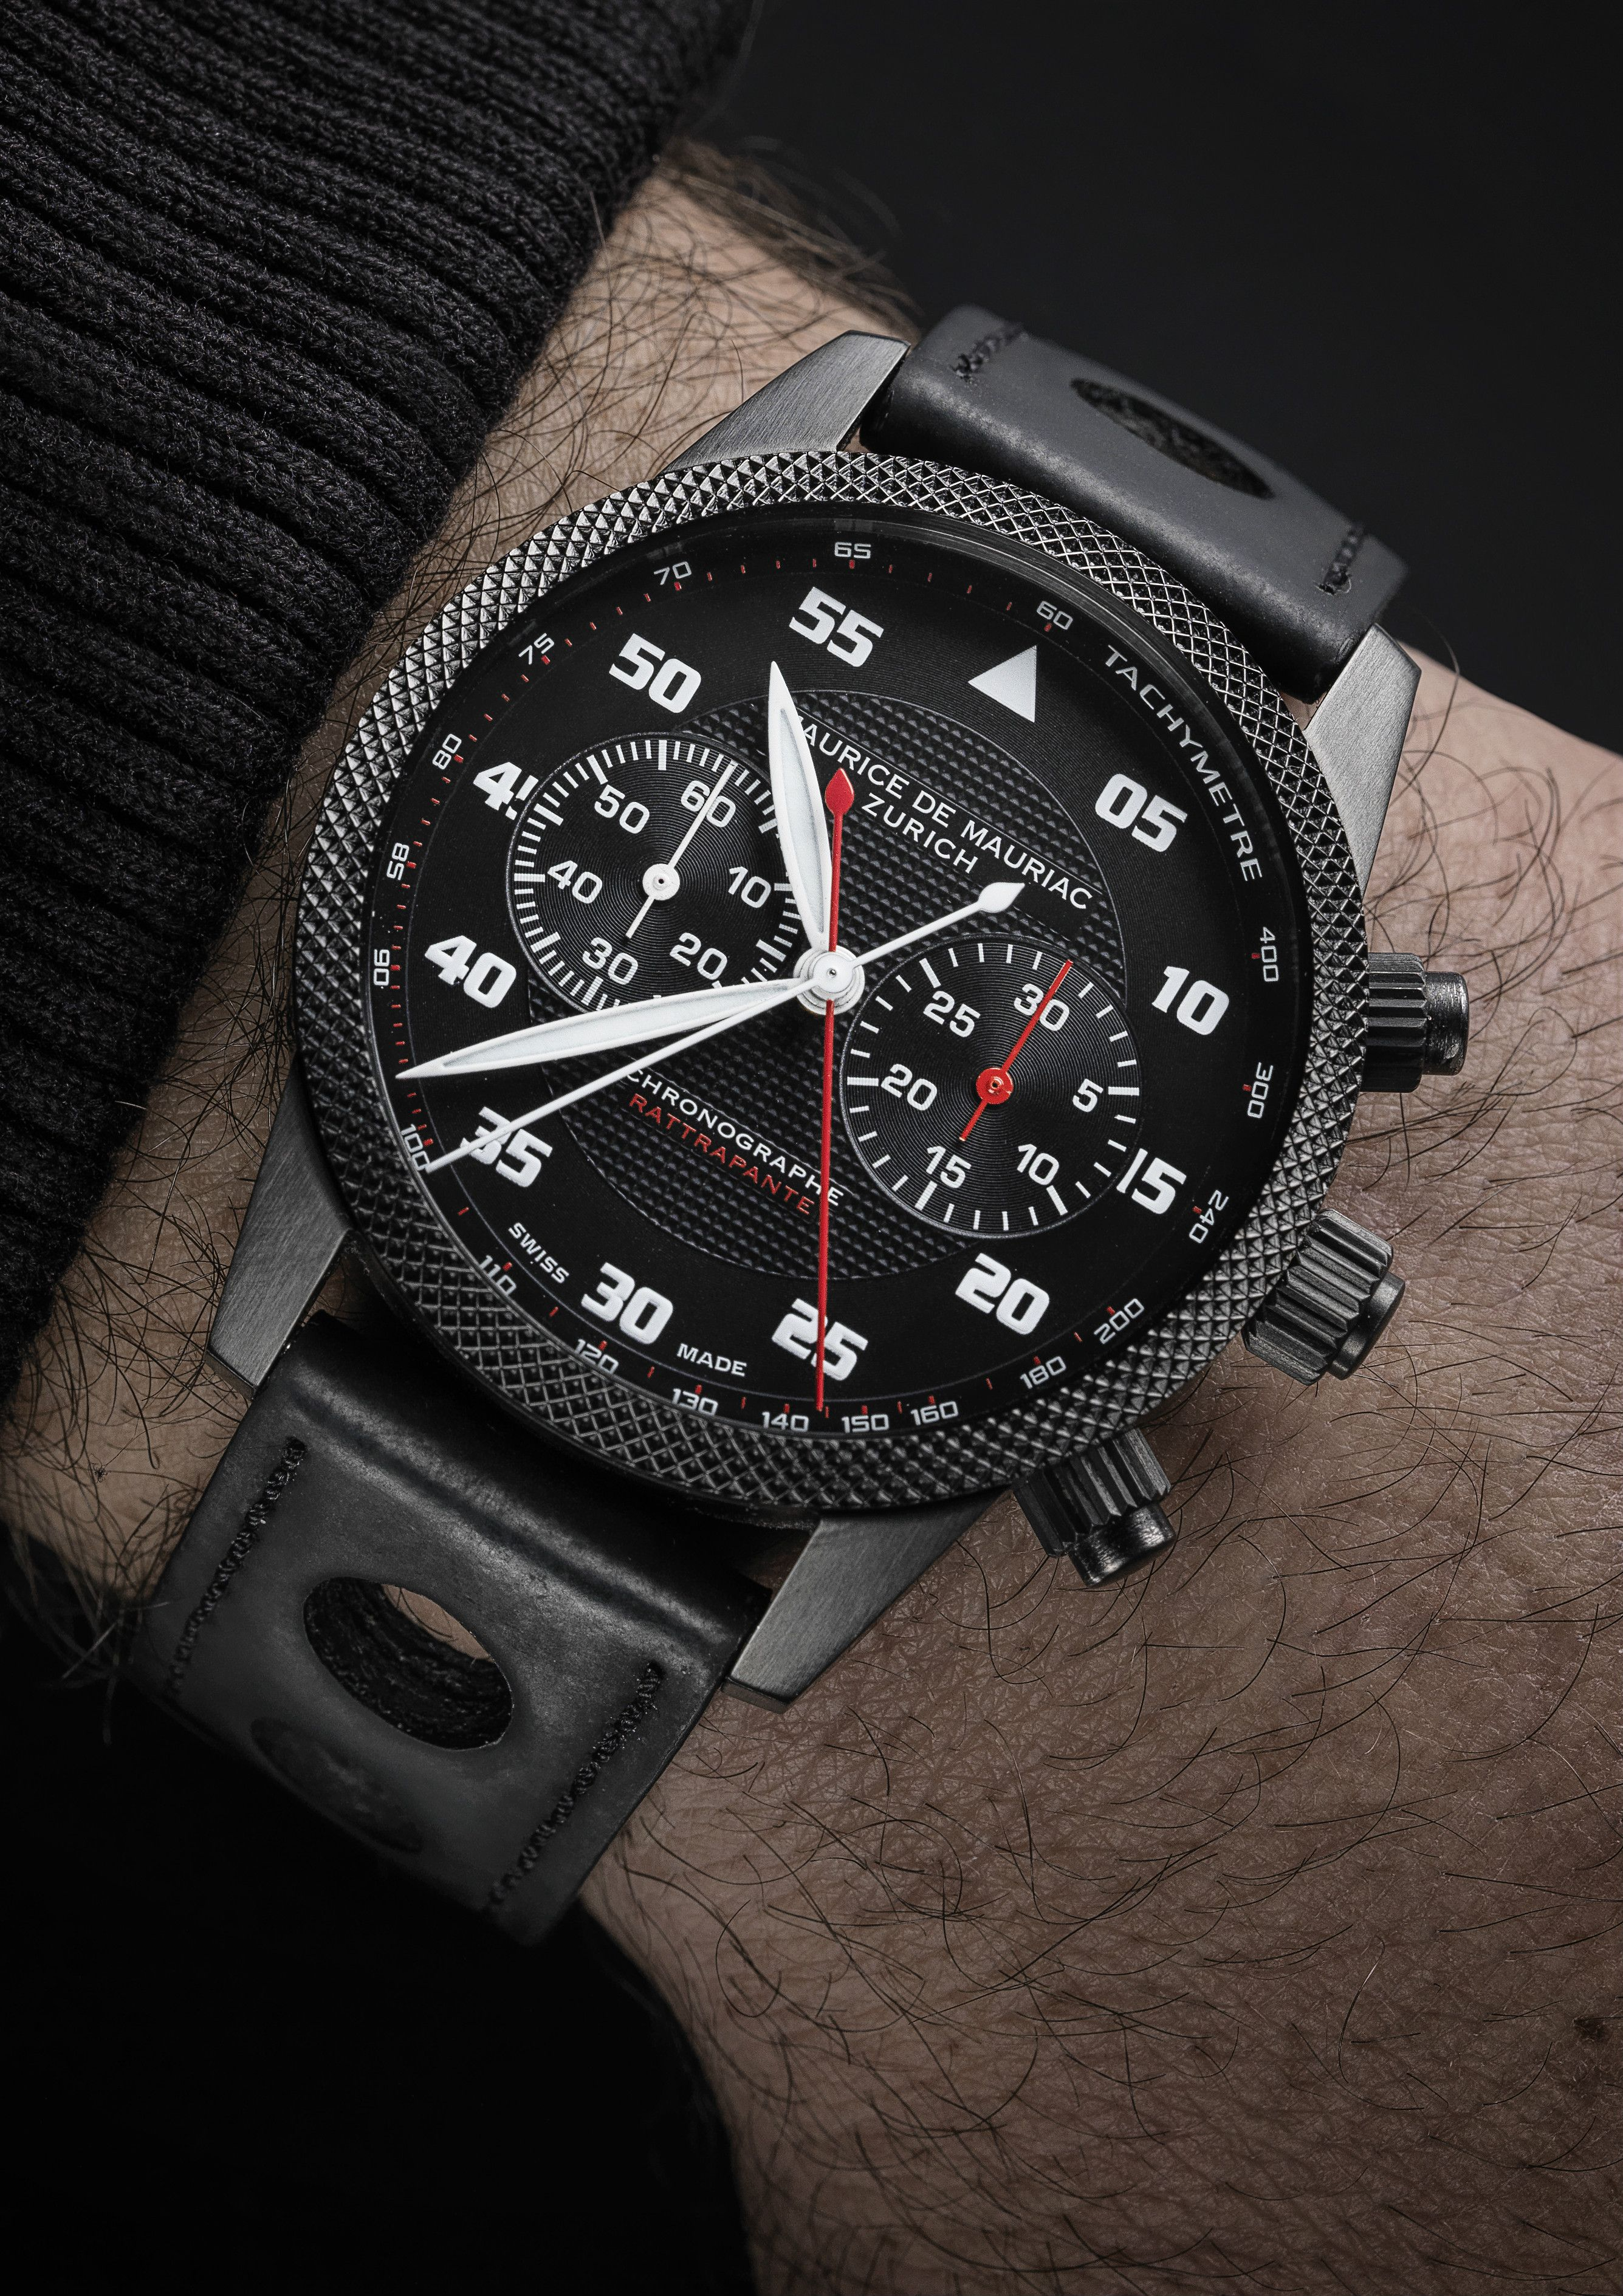 b55ab006420 Double Chronograph Rattrapante Monopoussoir by Maurice de Mauriac. Swiss  luxury watches for men and women.